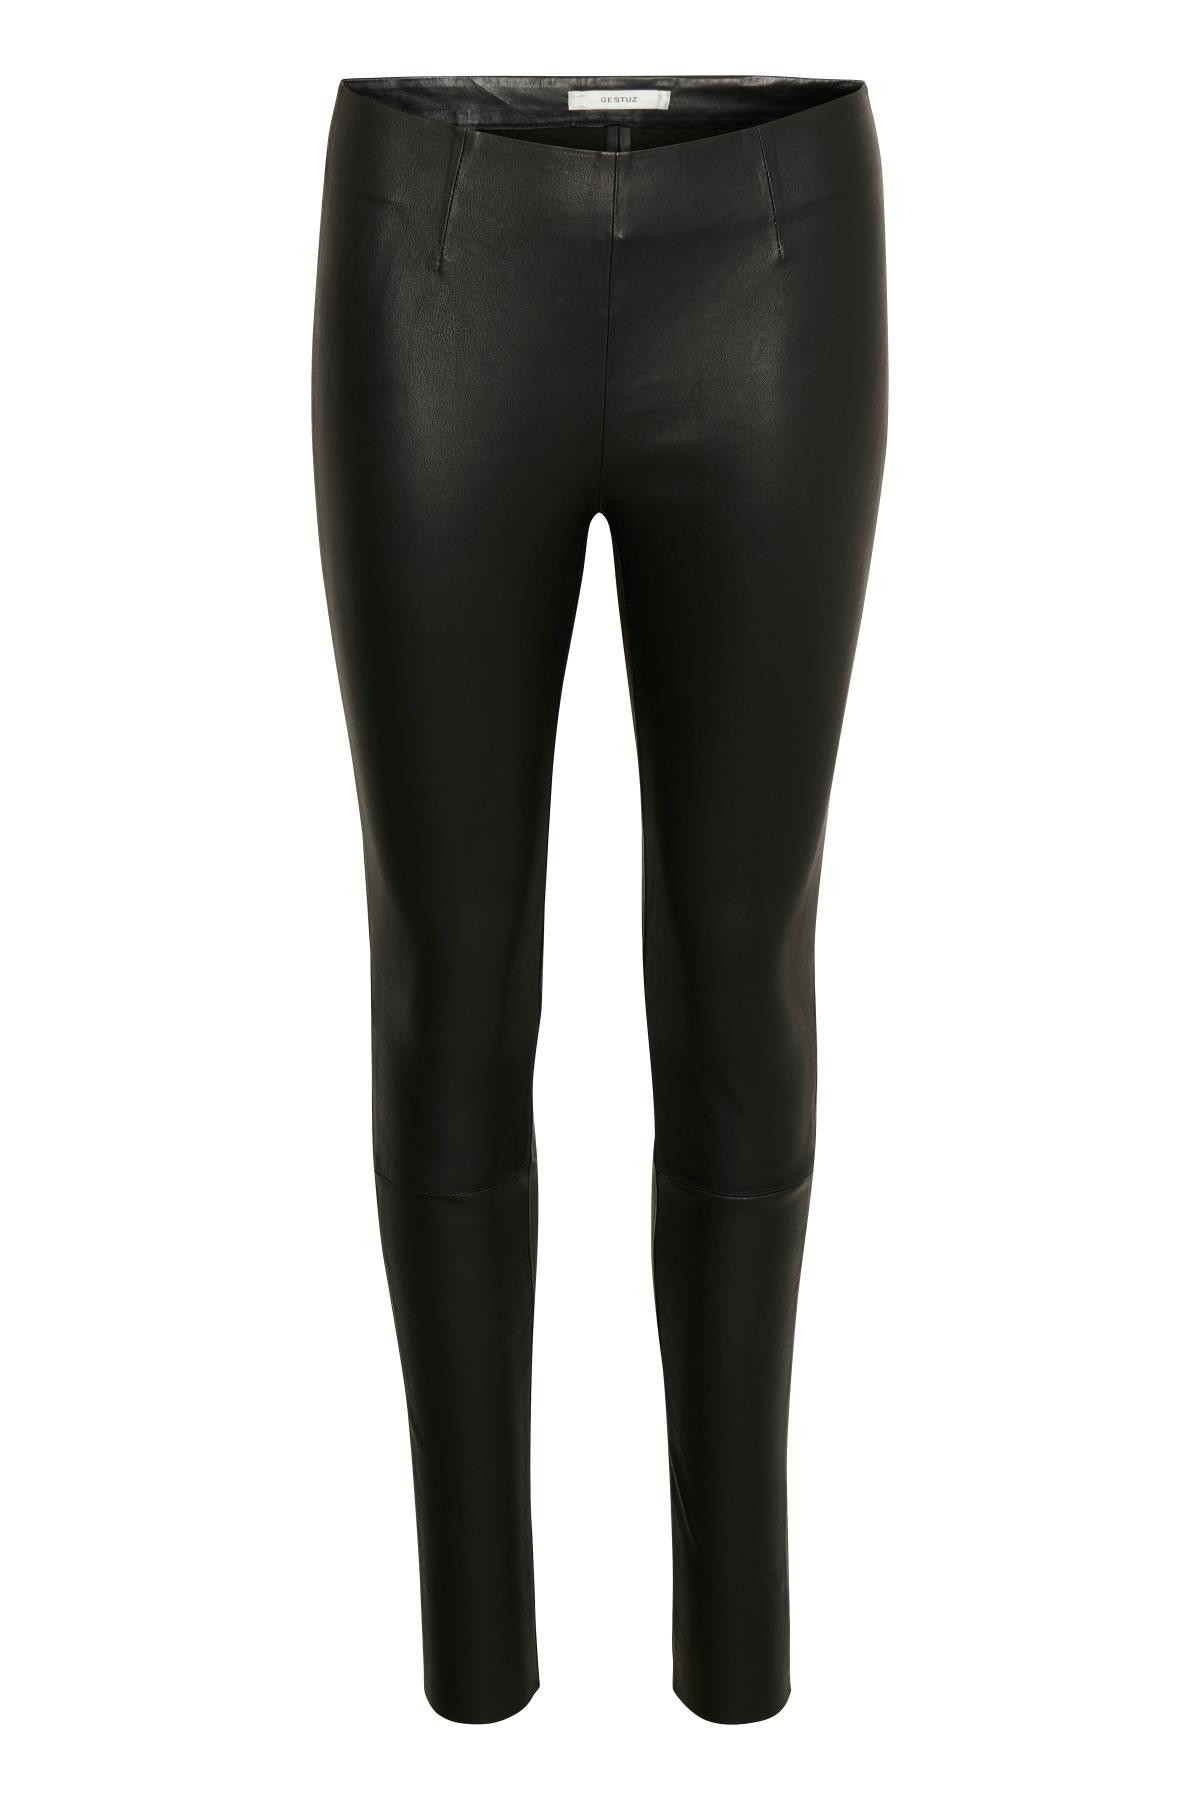 Image of   GESTUZ SASHA LEGGINGS (Black 90001, 38)